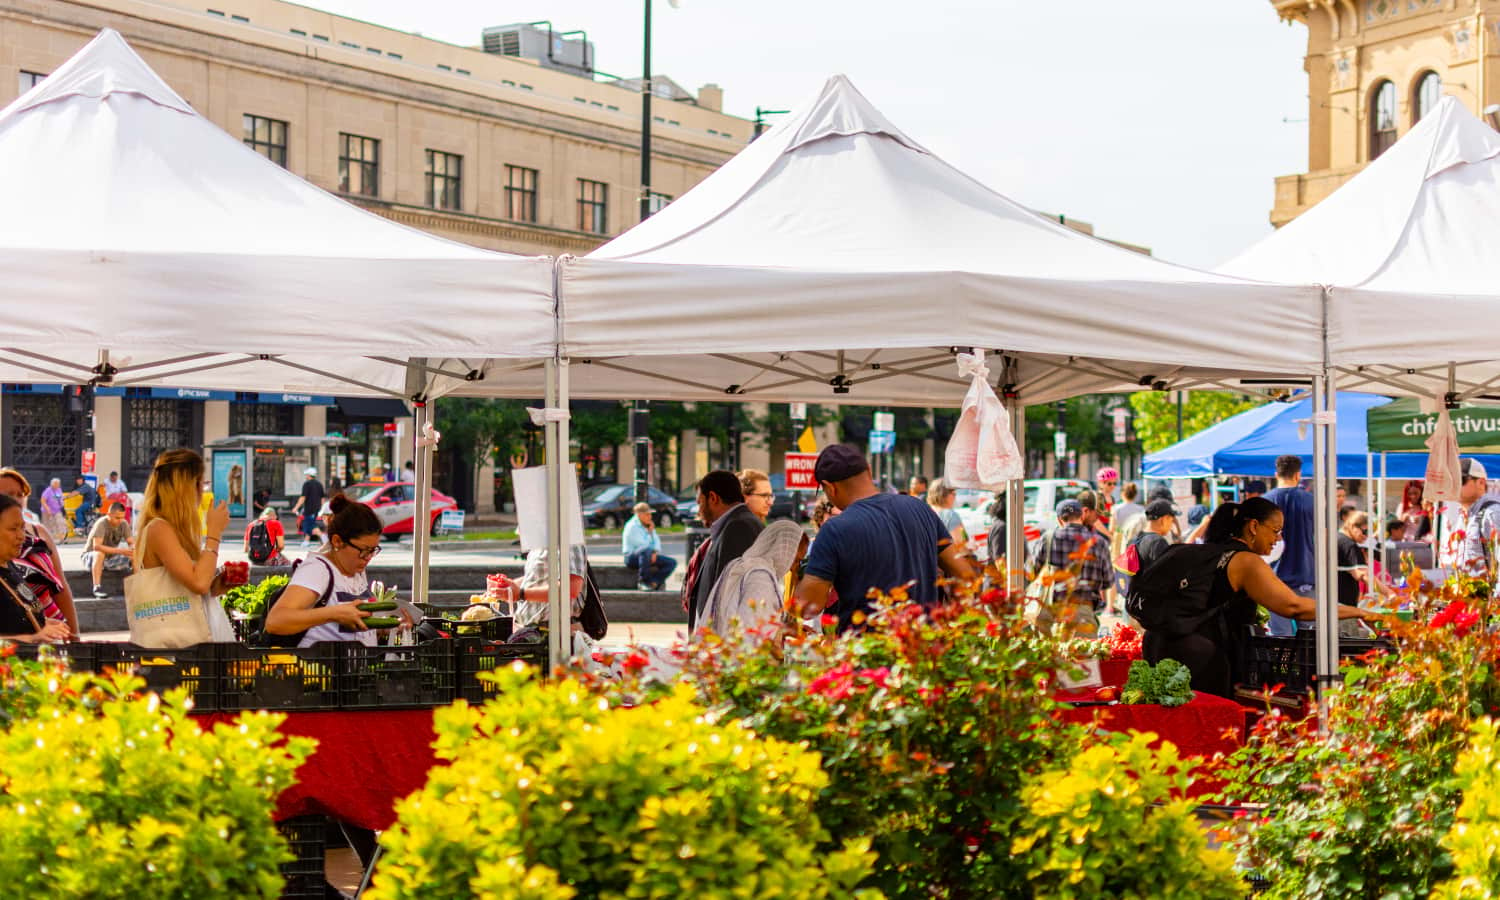 DC Greens Produce Plus program partners with farmers' markets across Washington D.C., using food to address the city's problems with equity in access, affordability, and health